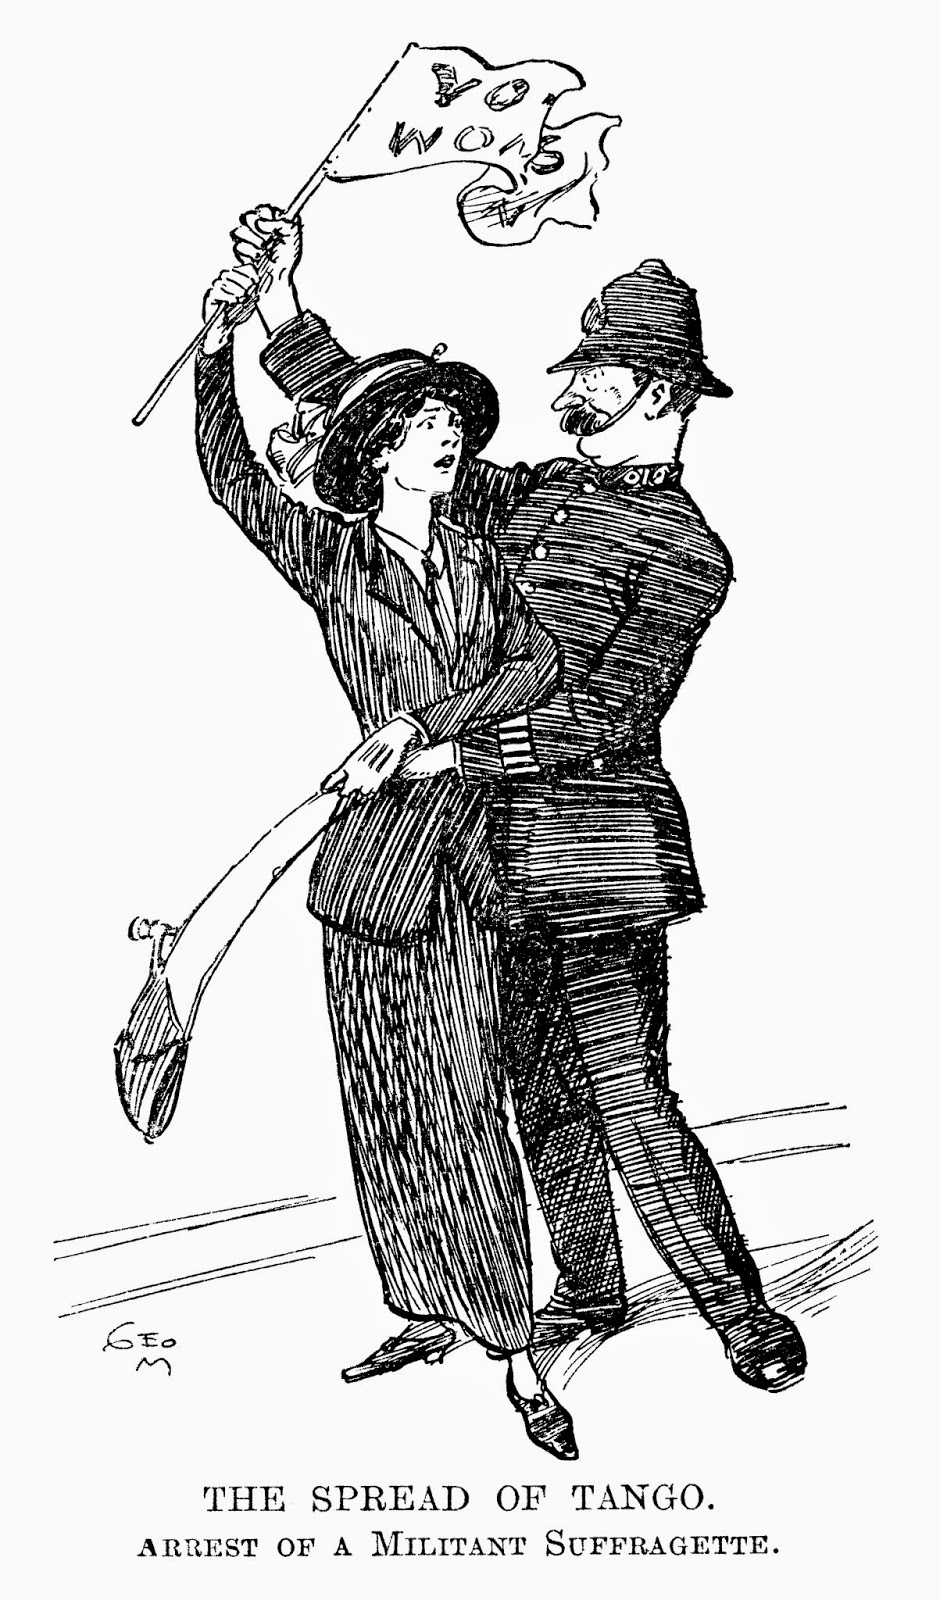 """THE SPREAD OF TANGO. ARREST OF A MILITANT SUFFRAGETTE"" Punch Magazine, London, 1913"